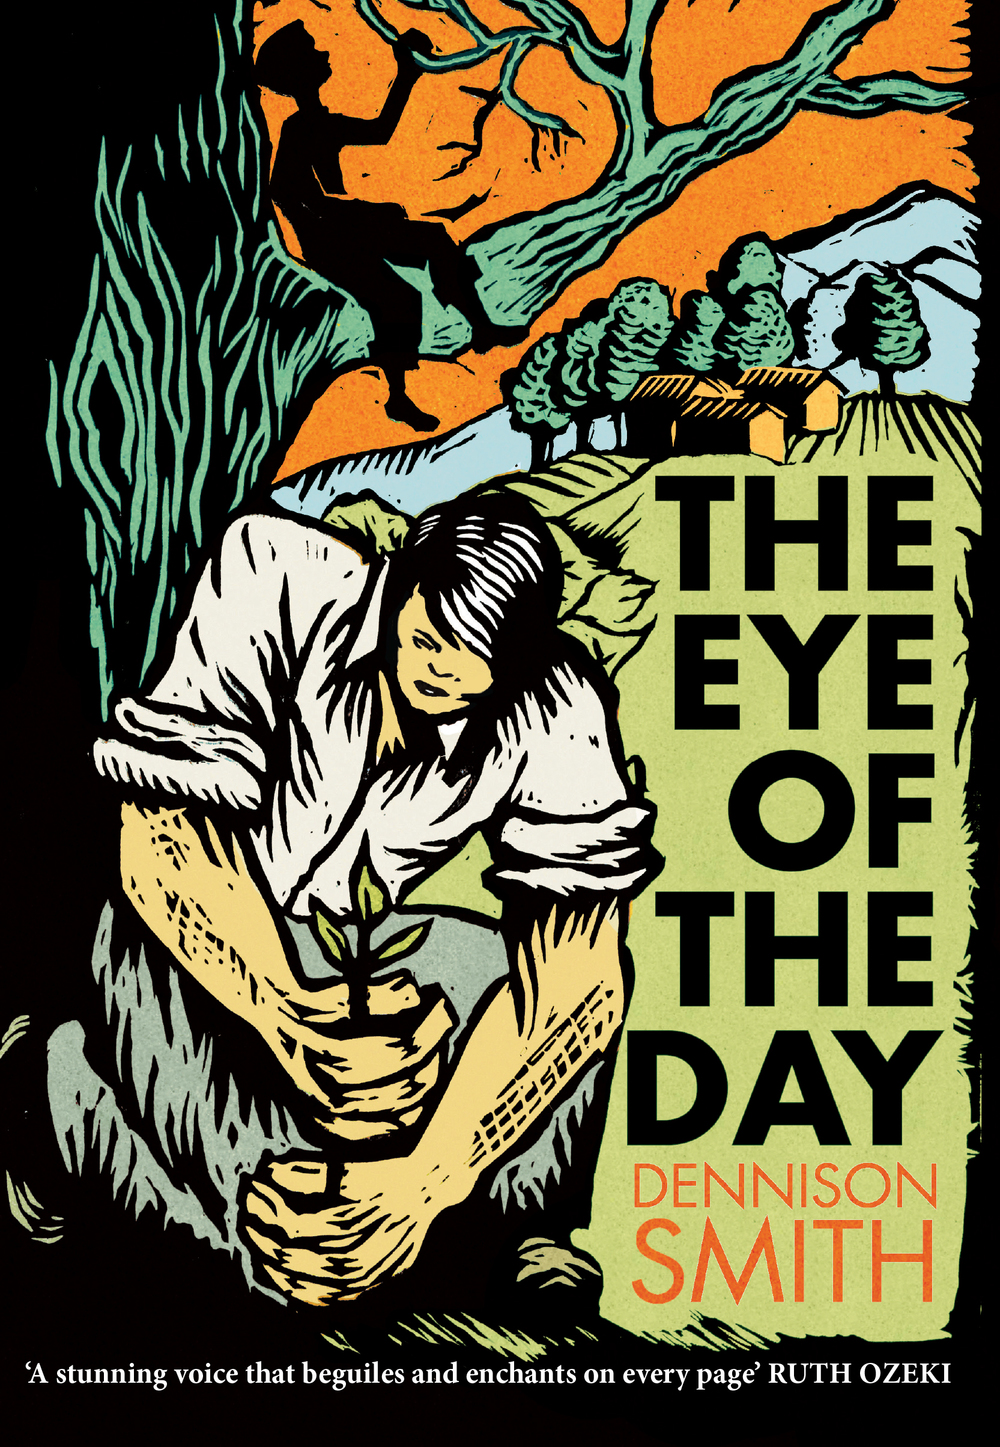 THE EYE OF THE DAY    Literary, 288 pages Harper Collins Canada, 2014    A brutal explosion in a summer-cottage town in Vermont brings together Amos, a disfigured handyman, and Aubrey, the cosseted son of a wealthy New England family. A masterly evocation of friendship and a profound meditation on the compromises exacted by life.